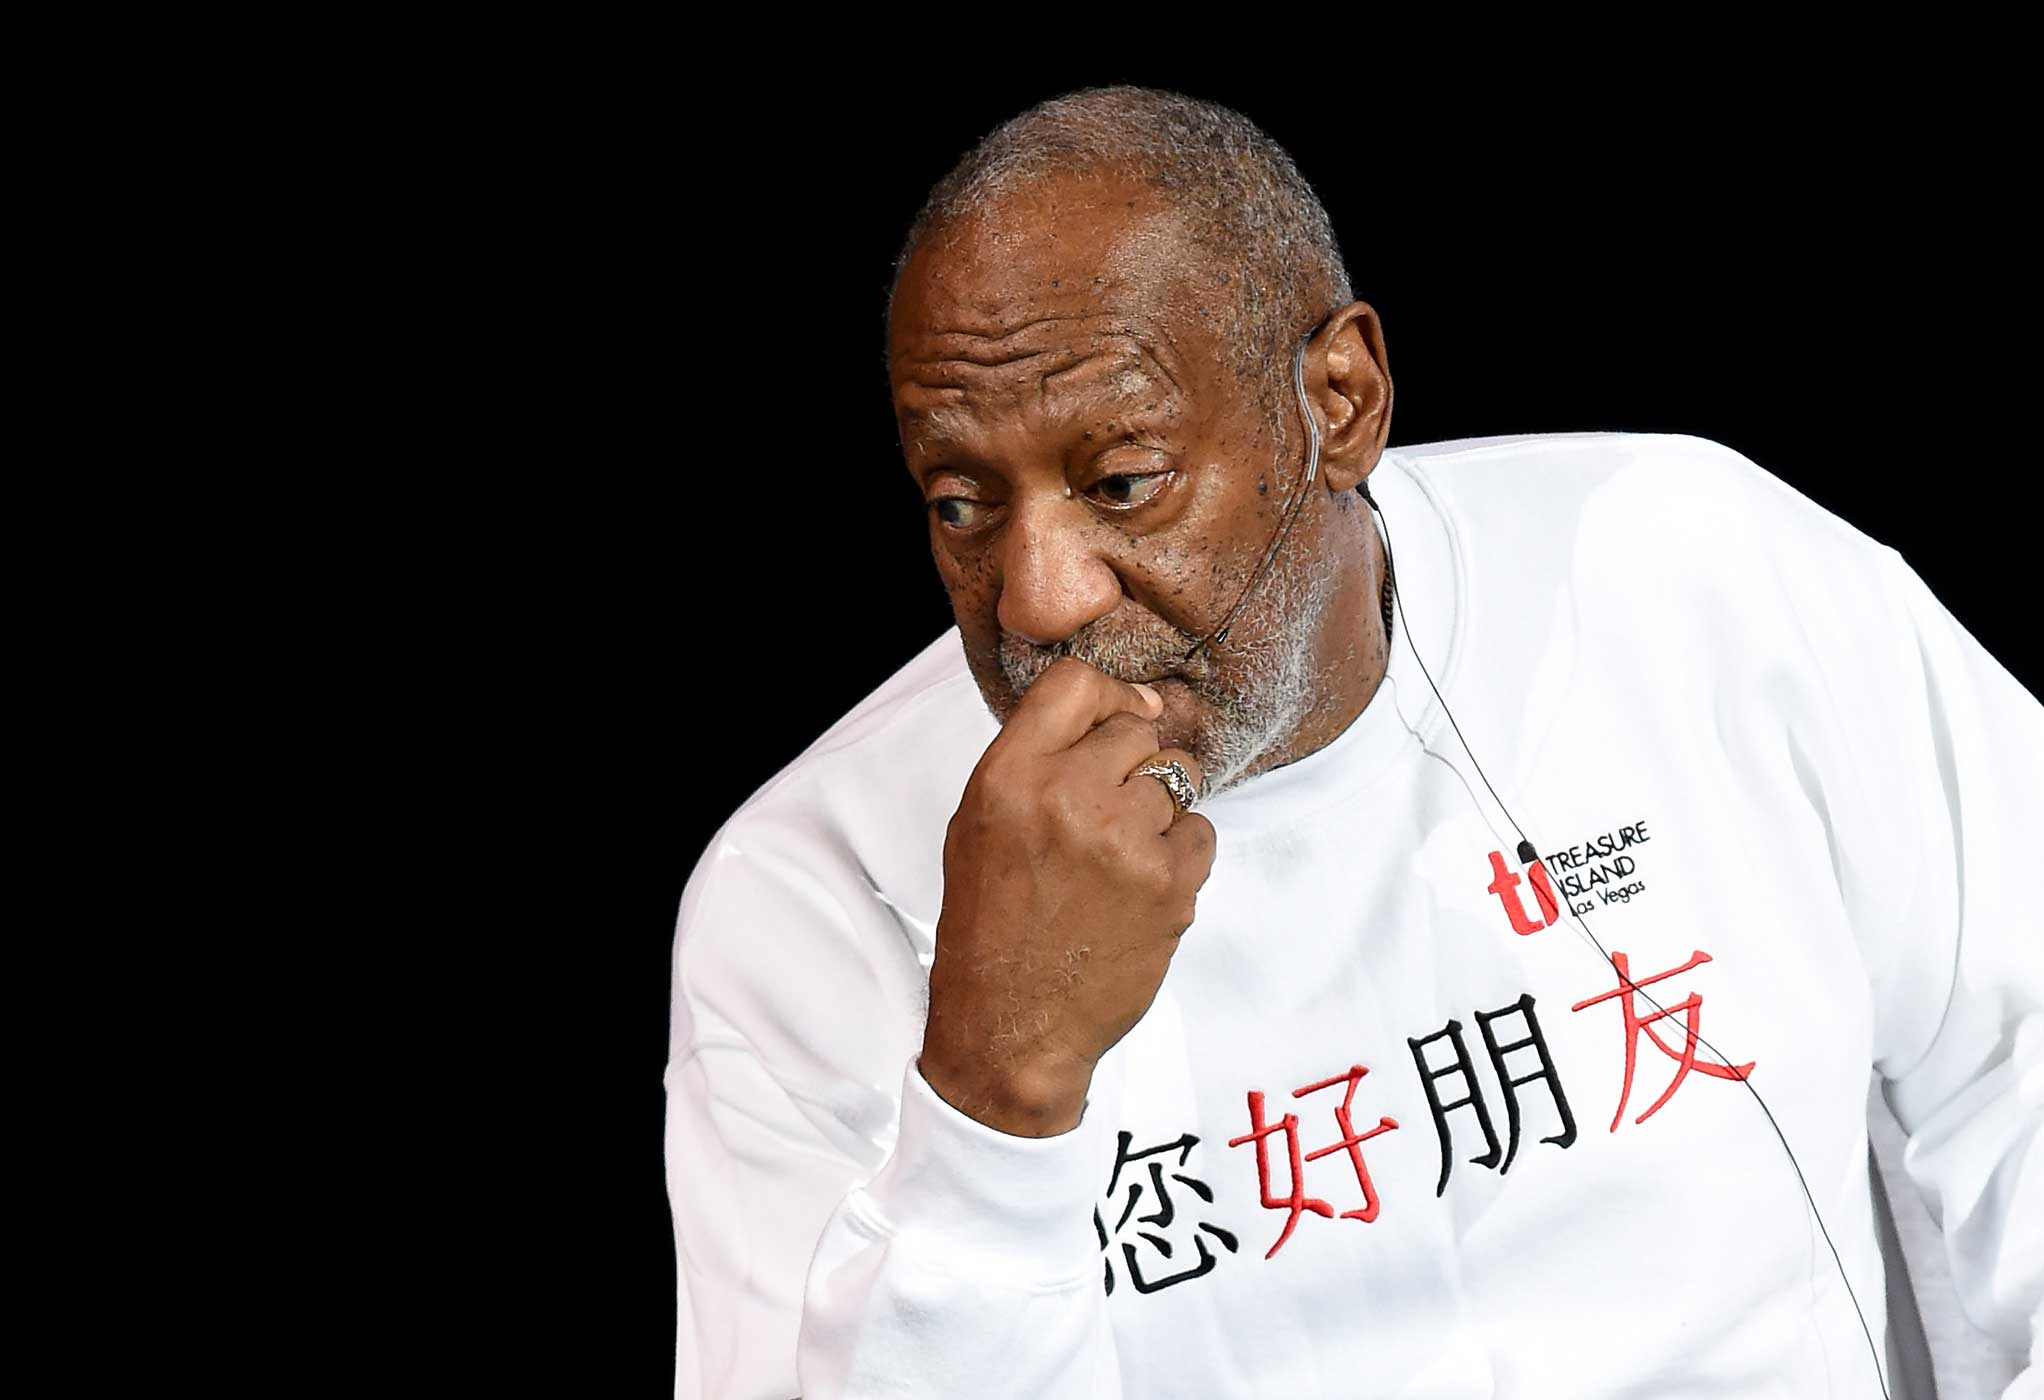 Bill Cosby Meme Generator Backfires Focus On Rape Allegations Time